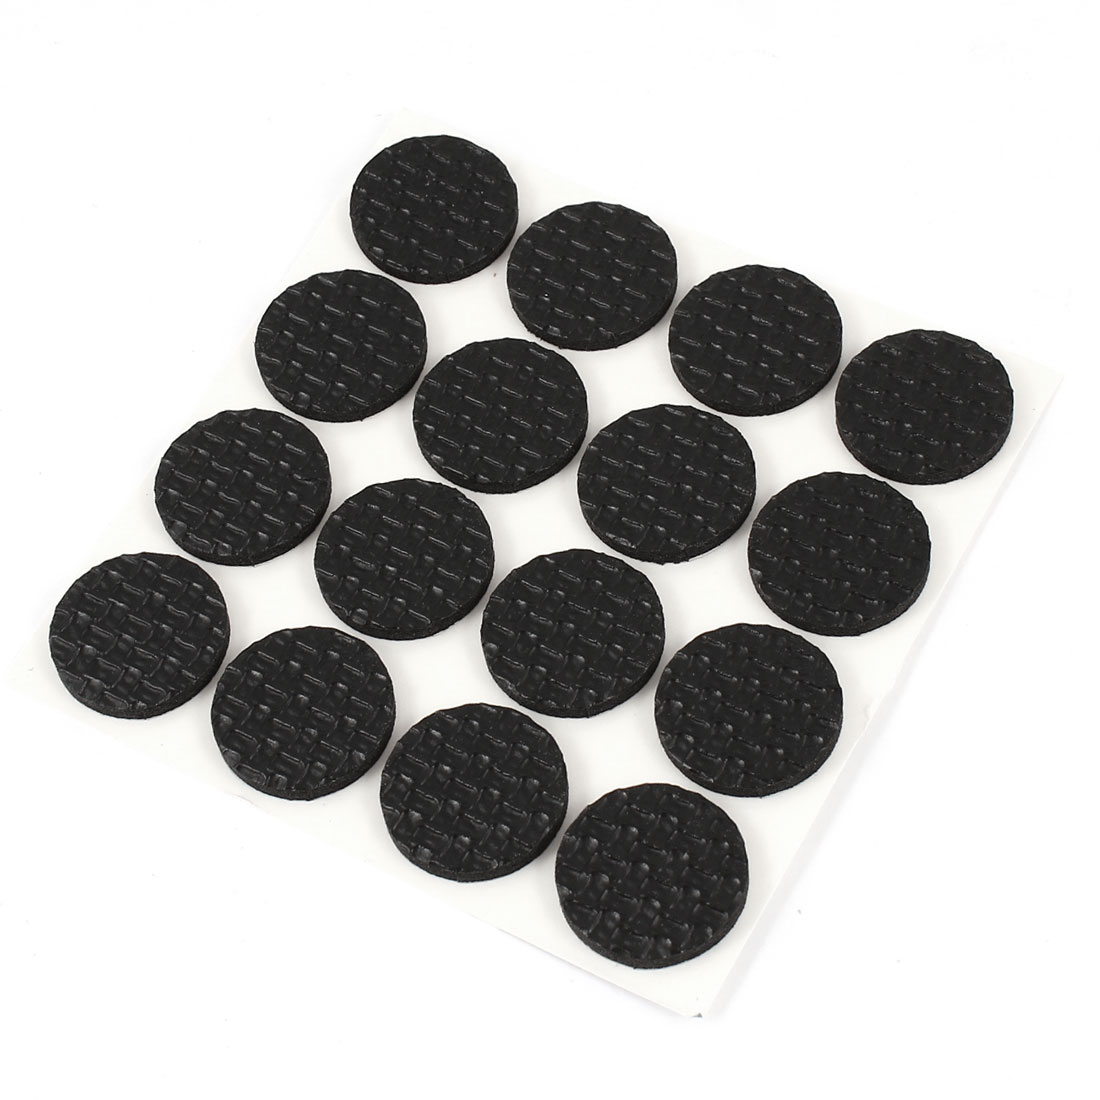 16 Pcs Anti Skid Self Adhesive Furniture Protection Pad 2cm Dia